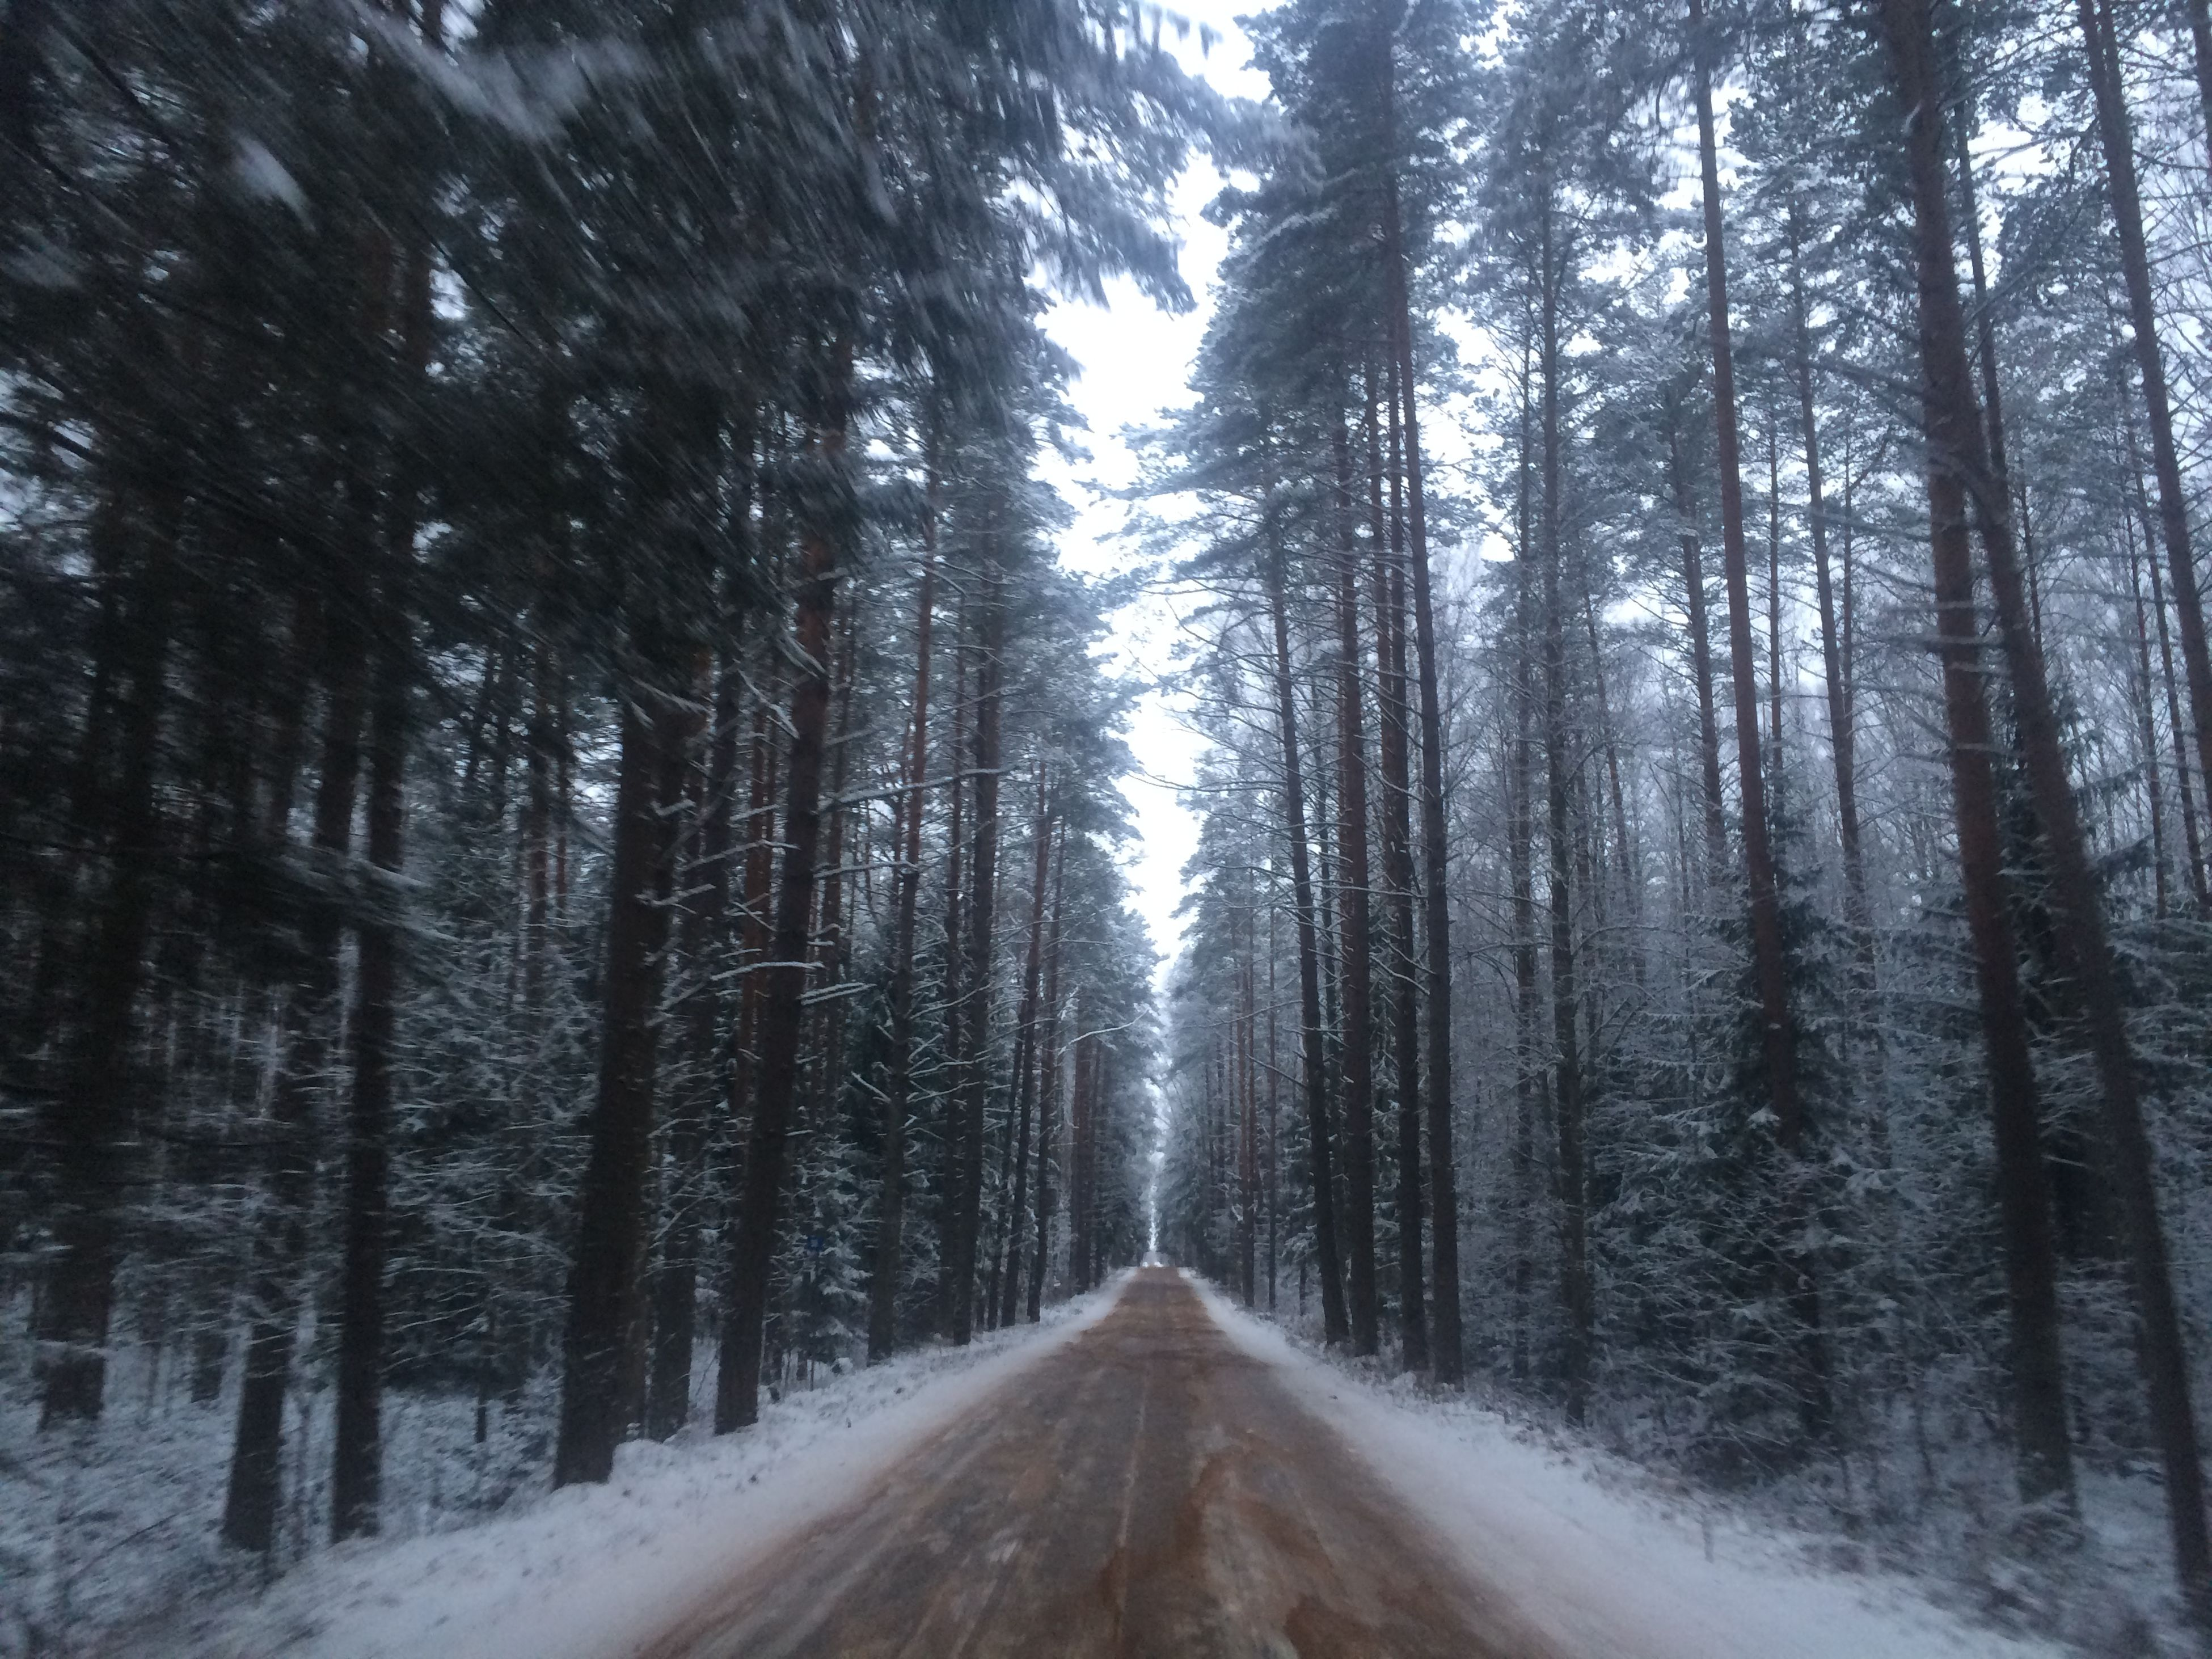 the way forward, tree, diminishing perspective, vanishing point, forest, road, snow, tranquility, winter, nature, transportation, tranquil scene, cold temperature, empty road, woodland, beauty in nature, tree trunk, growth, scenics, non-urban scene